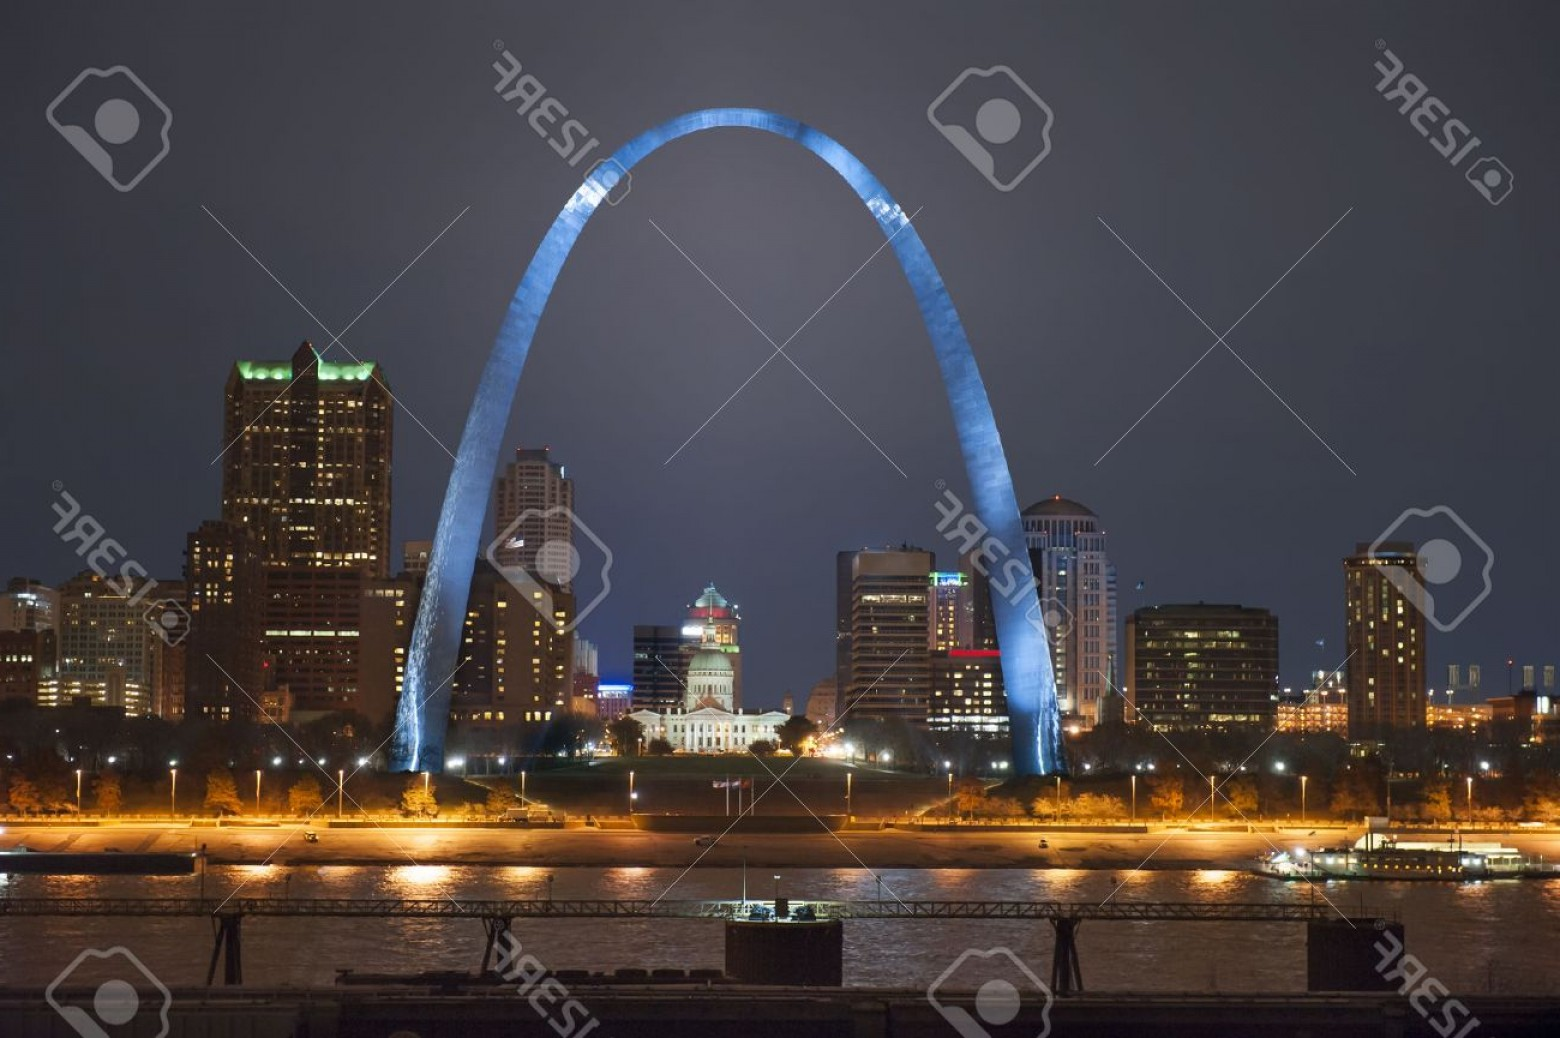 Arch Vector Illinios: Photonight Shot Of Downtown St Louis Riverfront With The Arch Shot From The Illinois Side Of The River